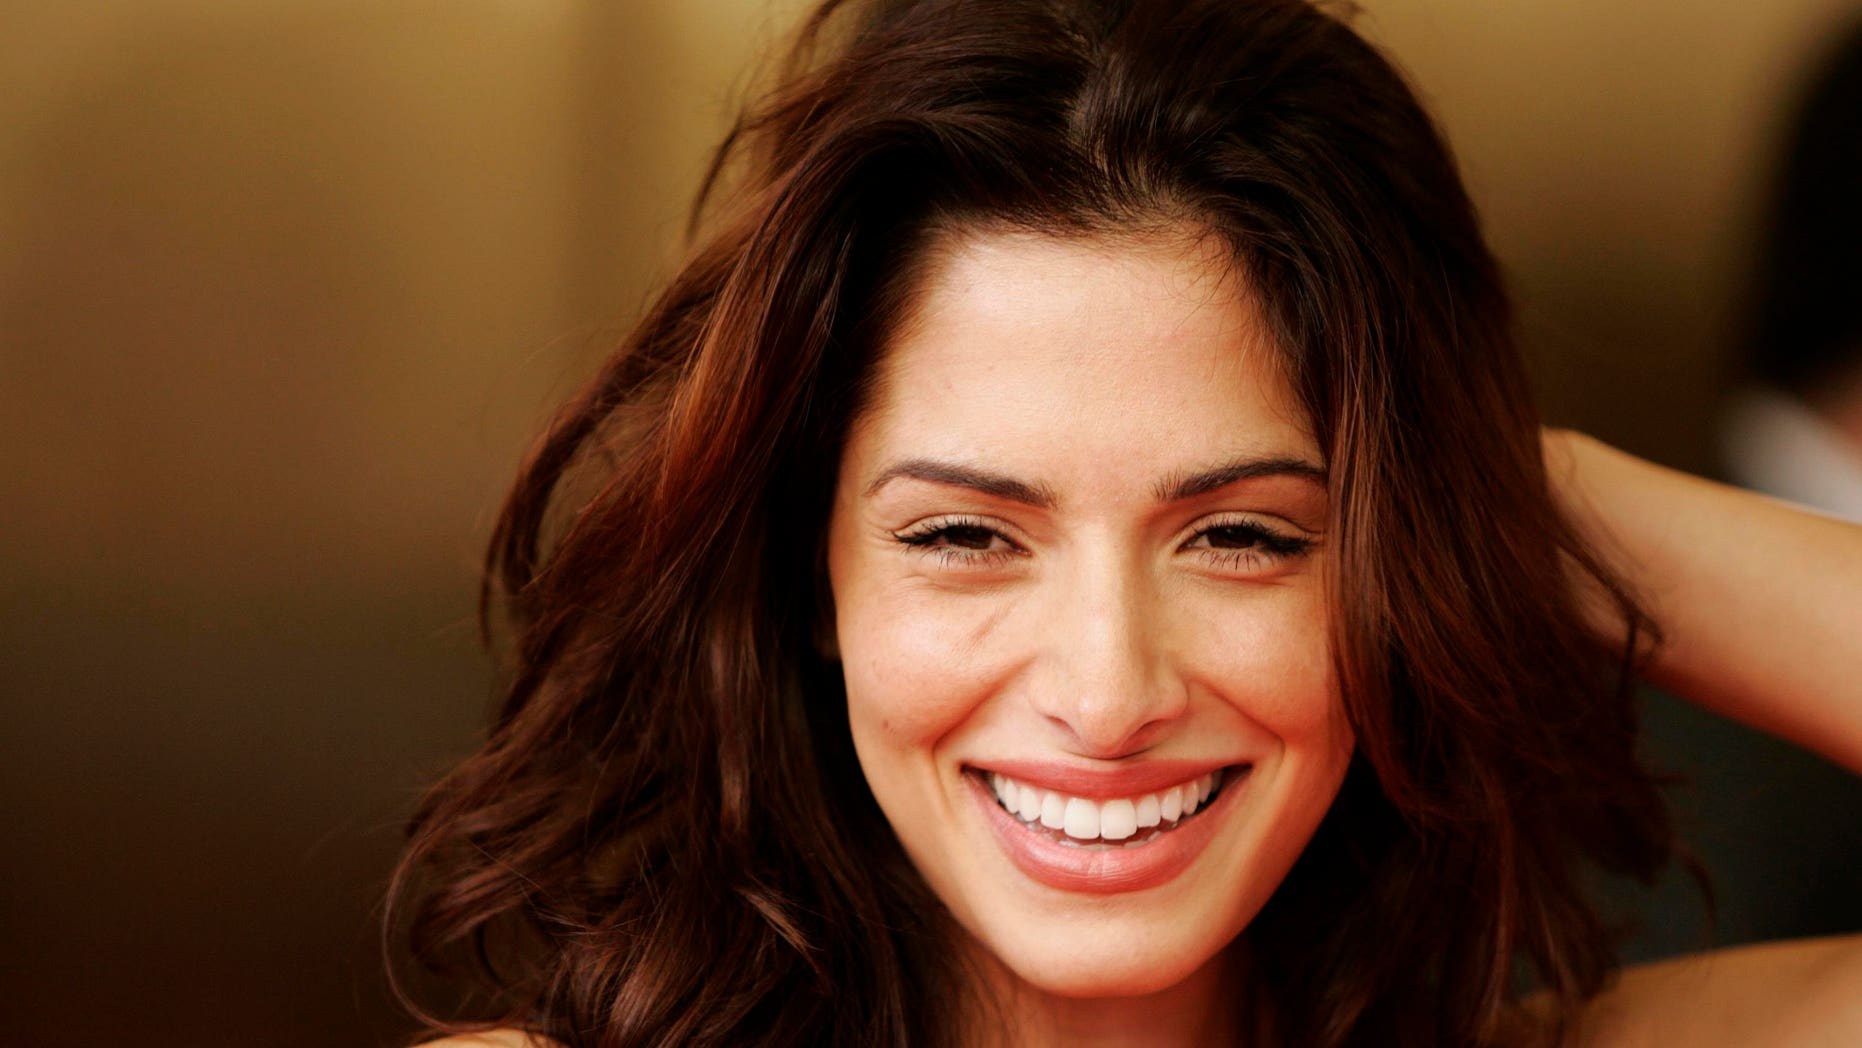 Video Sarah Shahi naked (67 photos), Ass, Paparazzi, Boobs, braless 2019